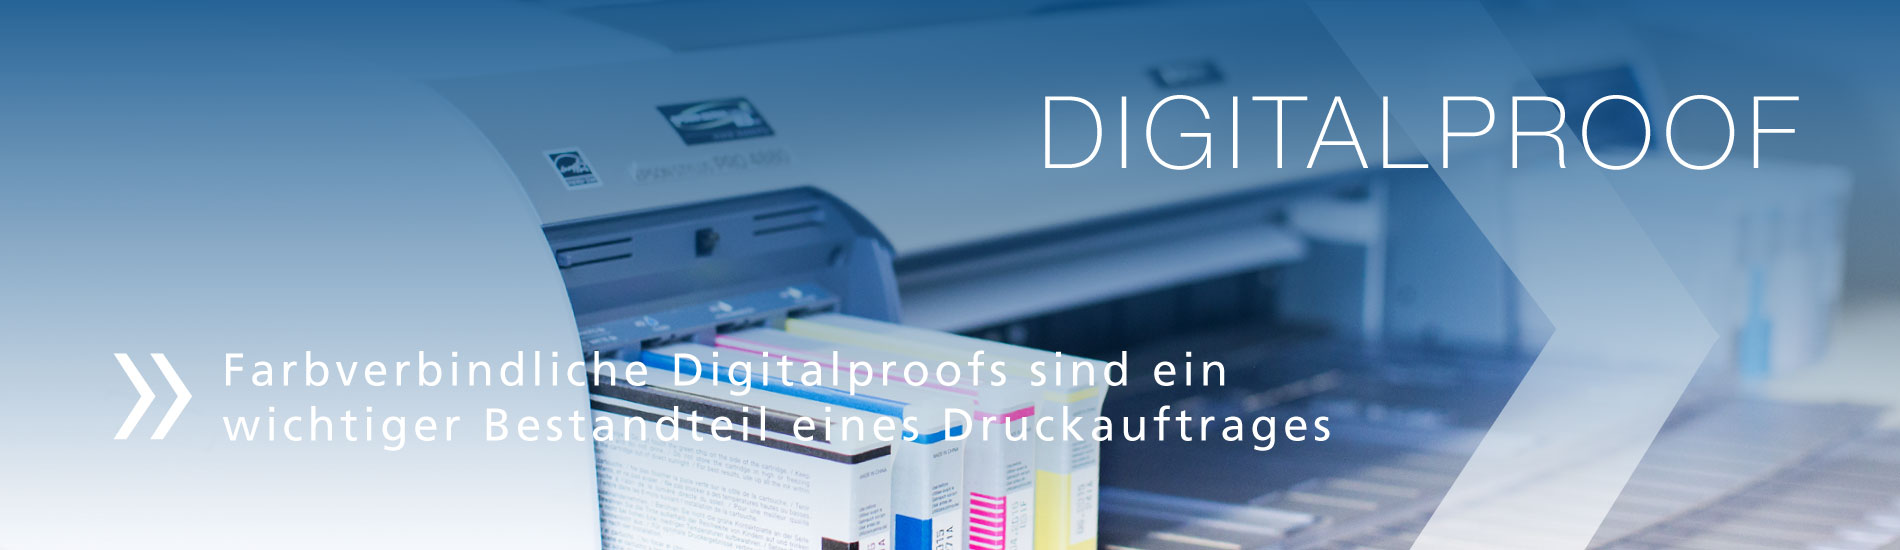 Digitalproof